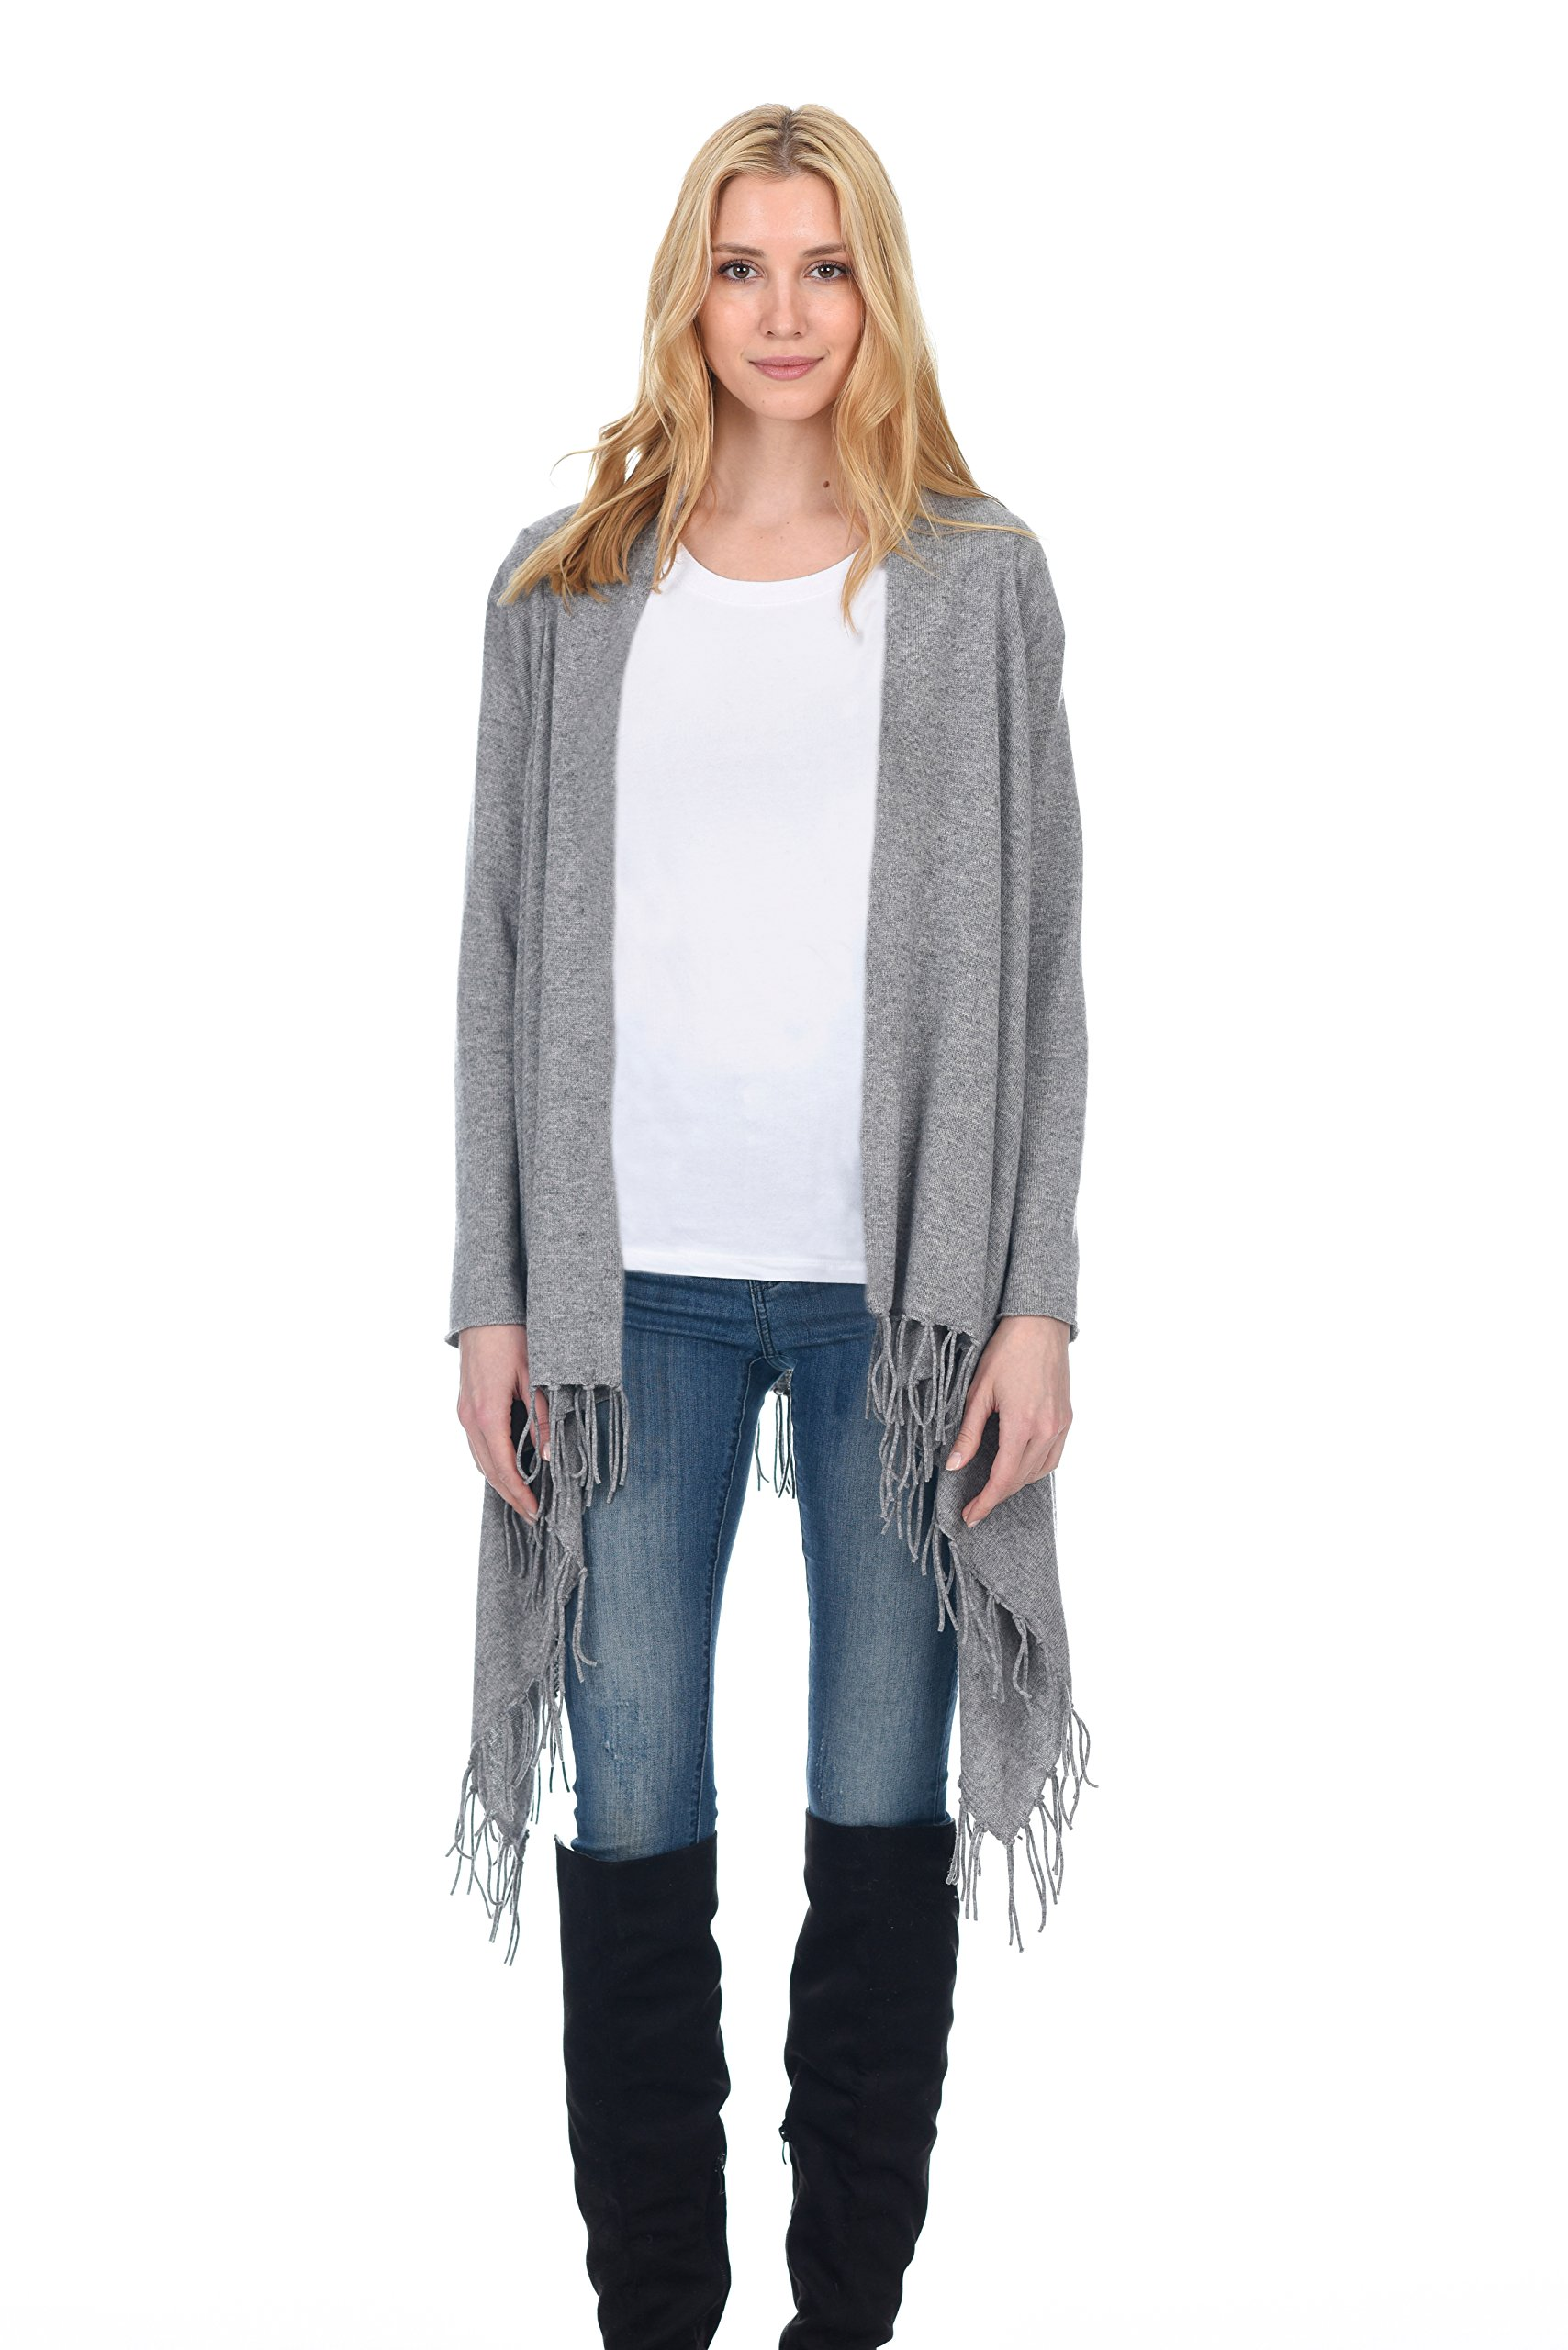 State Fusio Women's Wool Cashmere Casual Knitted Poncho Cardigan Shawl Removable Fringe Heather Grey